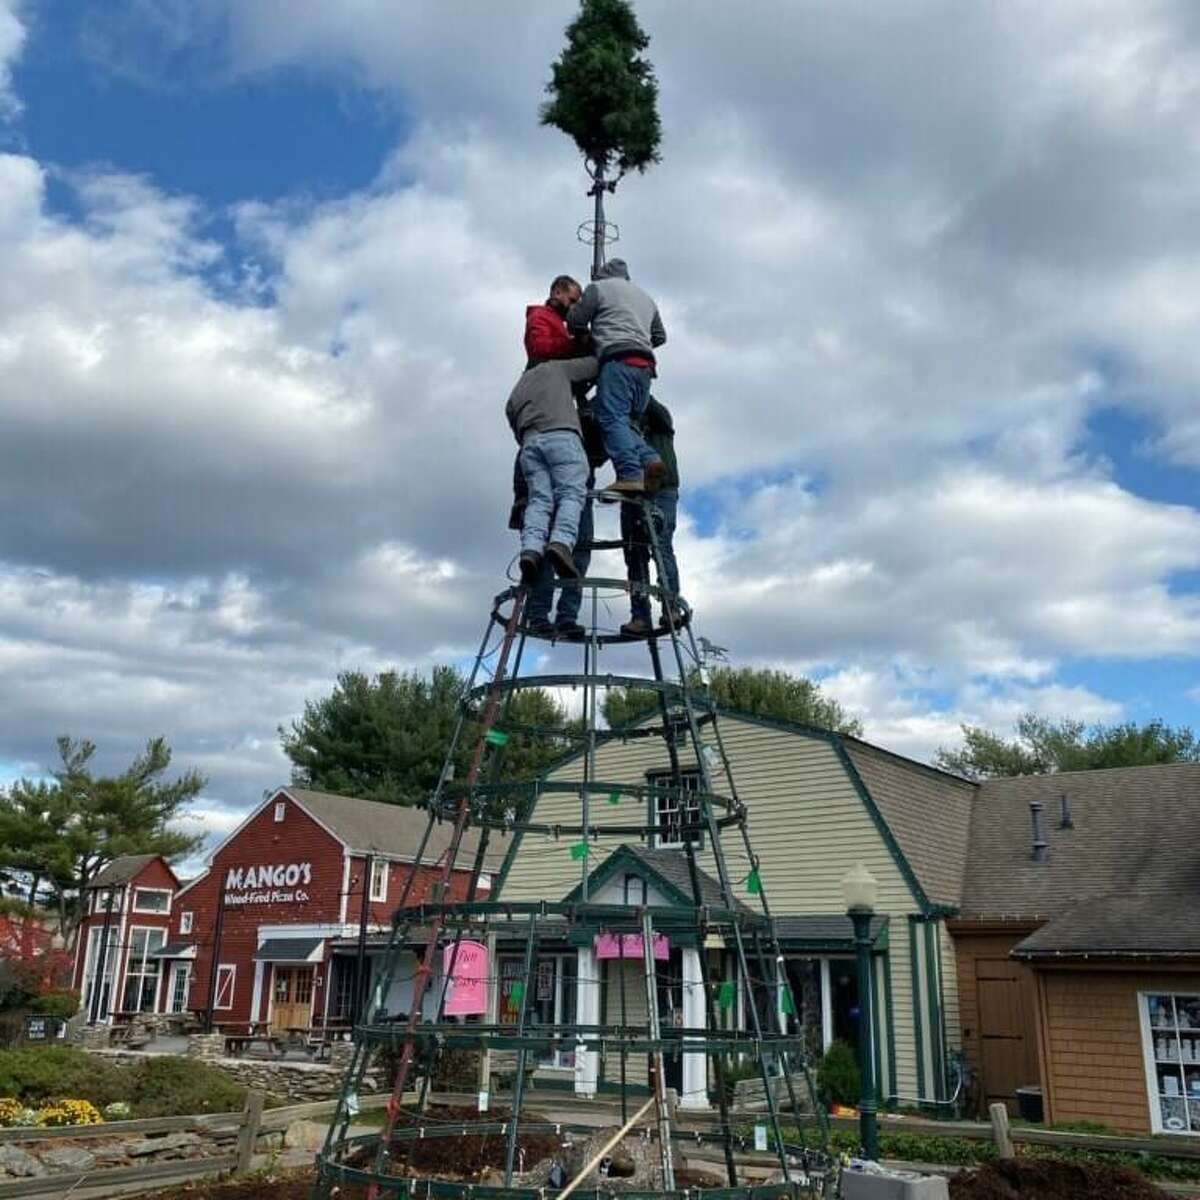 Workers set up a central element of the new light display at Olde Mistick Village recently.